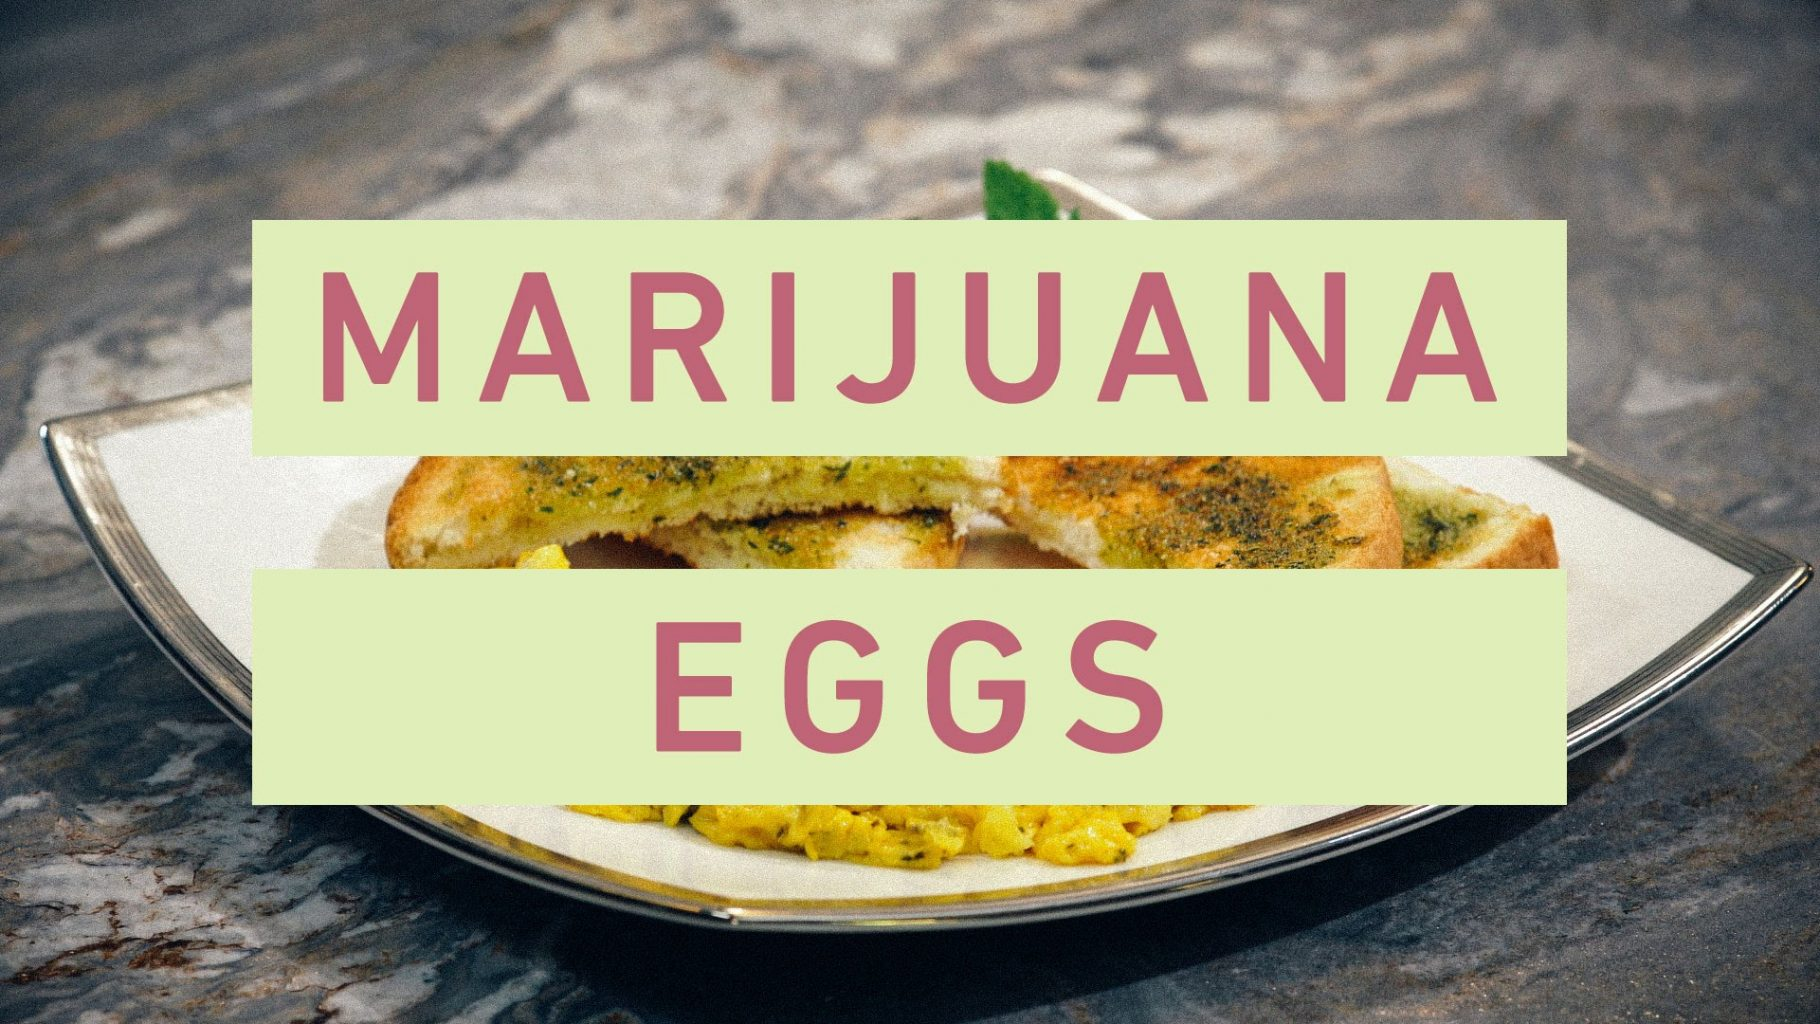 Green Eggs and Toast: Cooking Breakfast with Marijuana